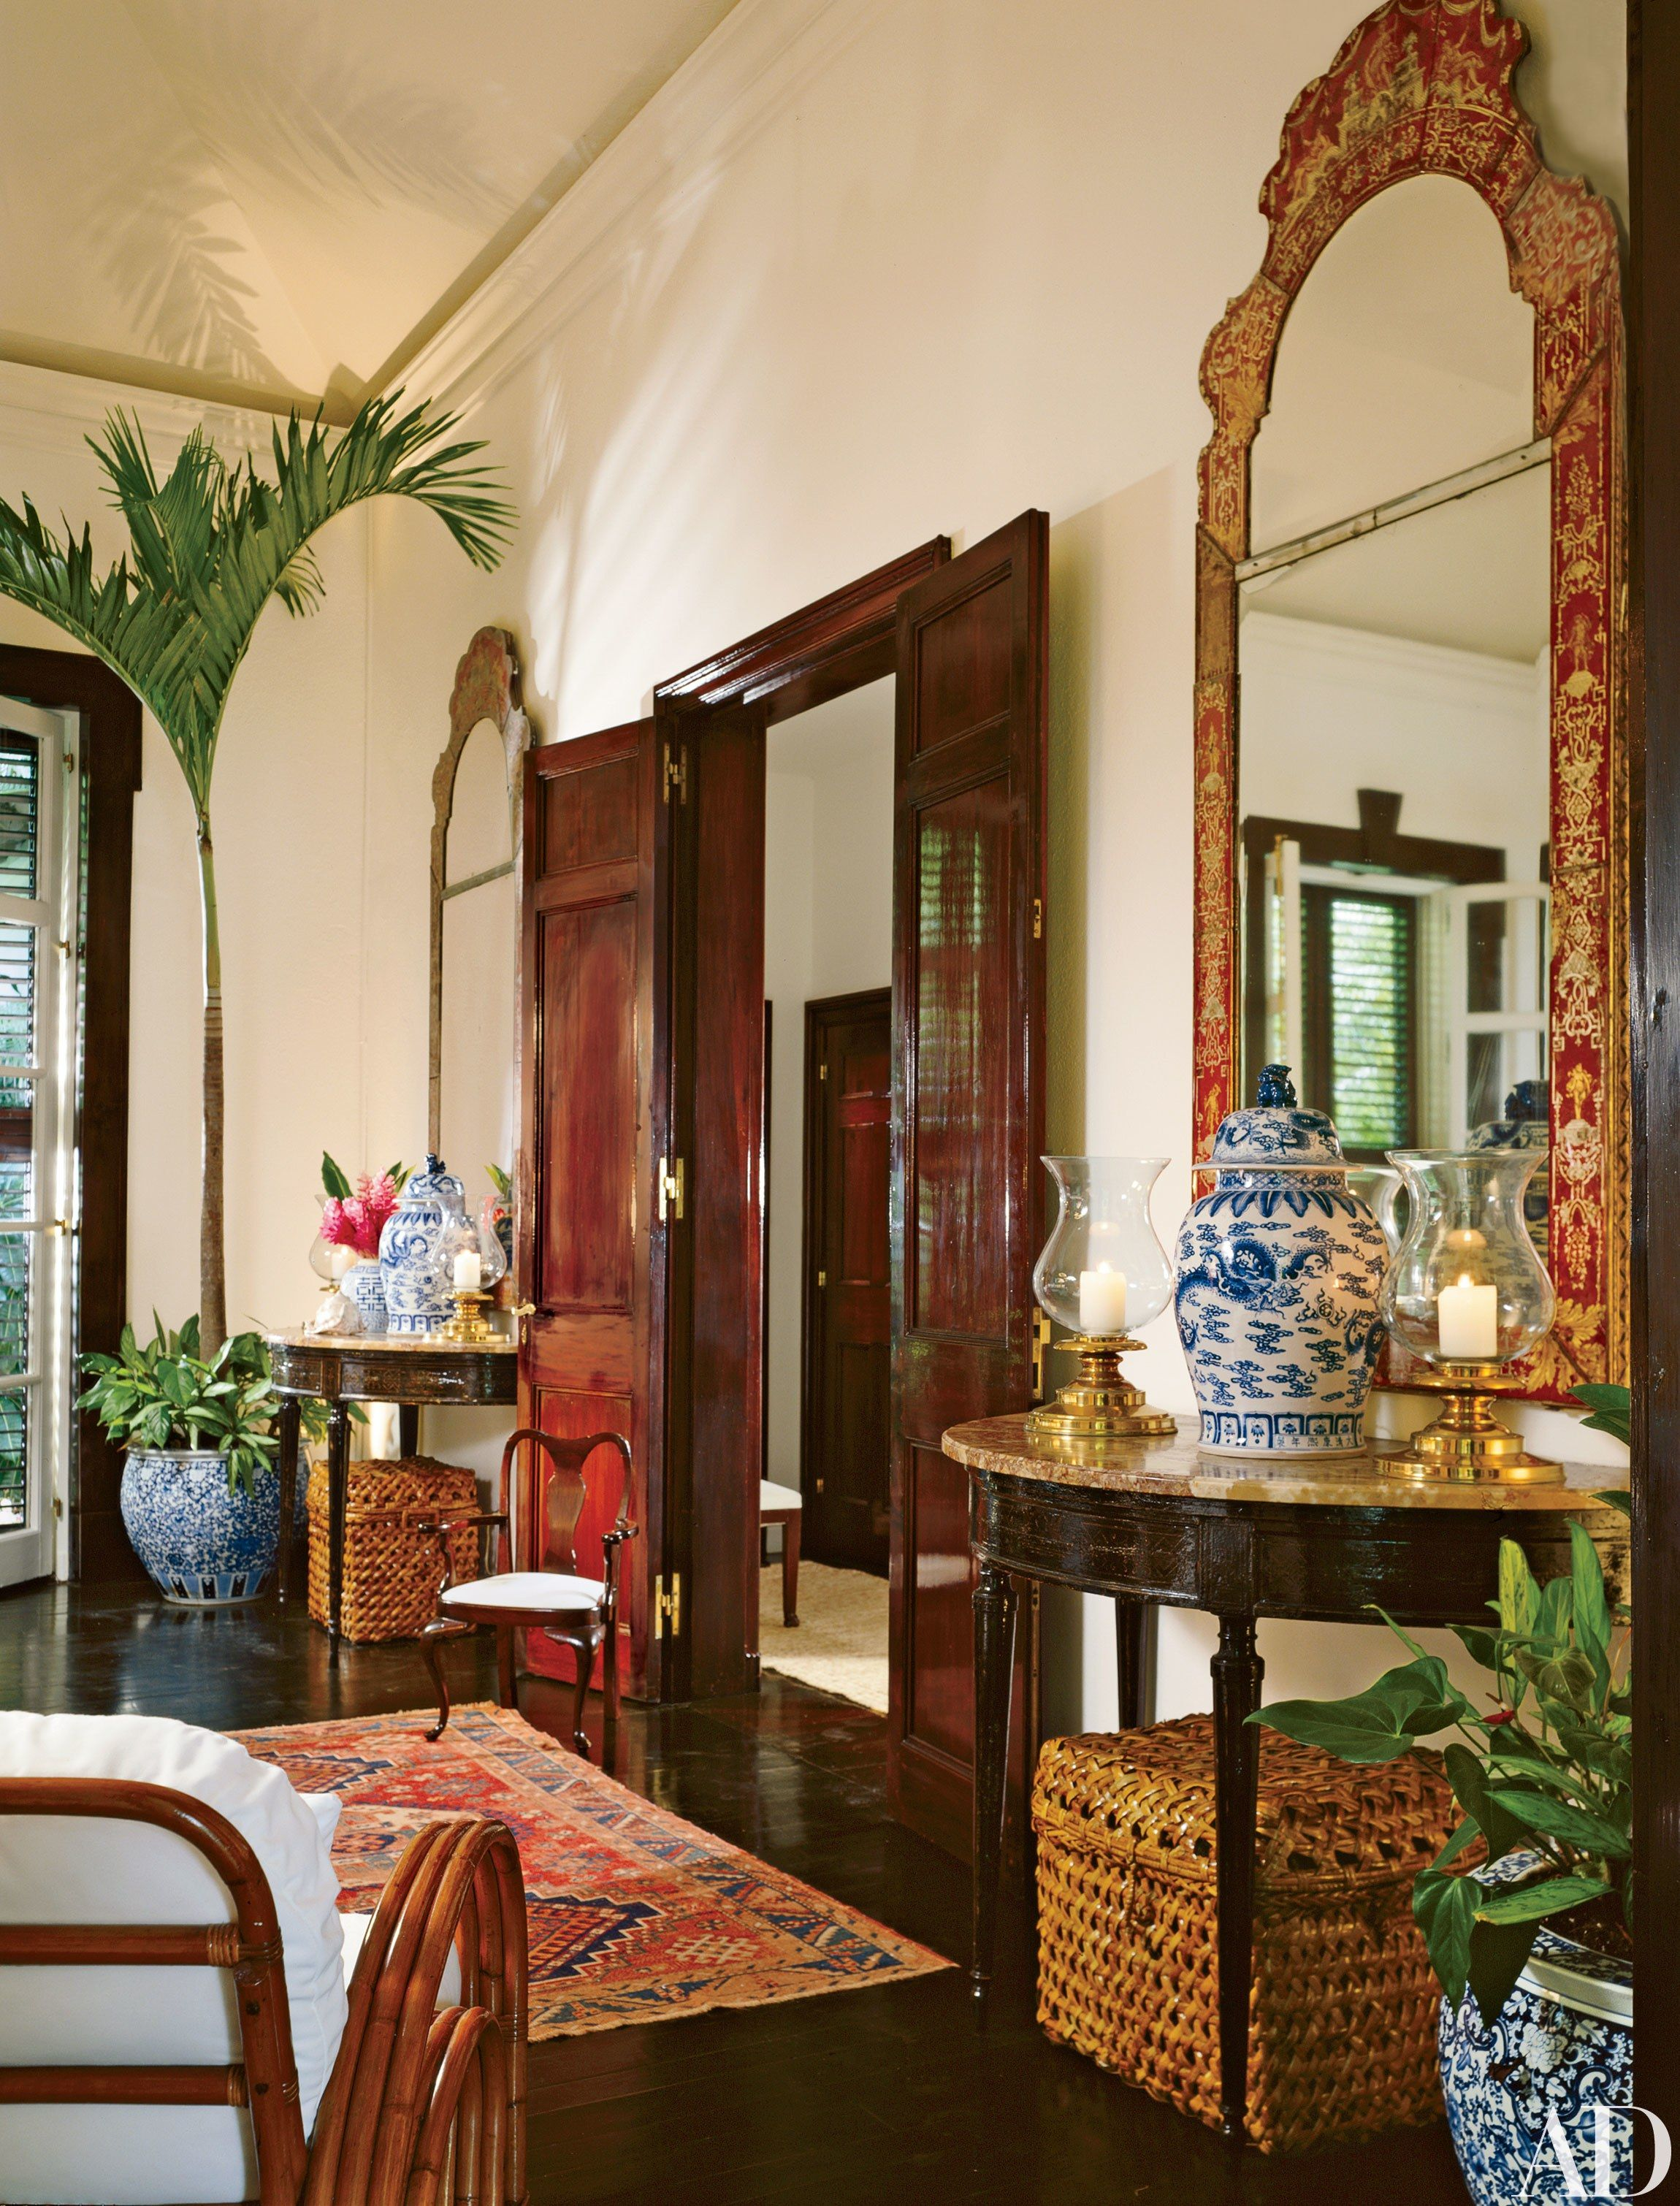 Take A Look Inside Ralph Lauren S Two House Retreat In Jamaica